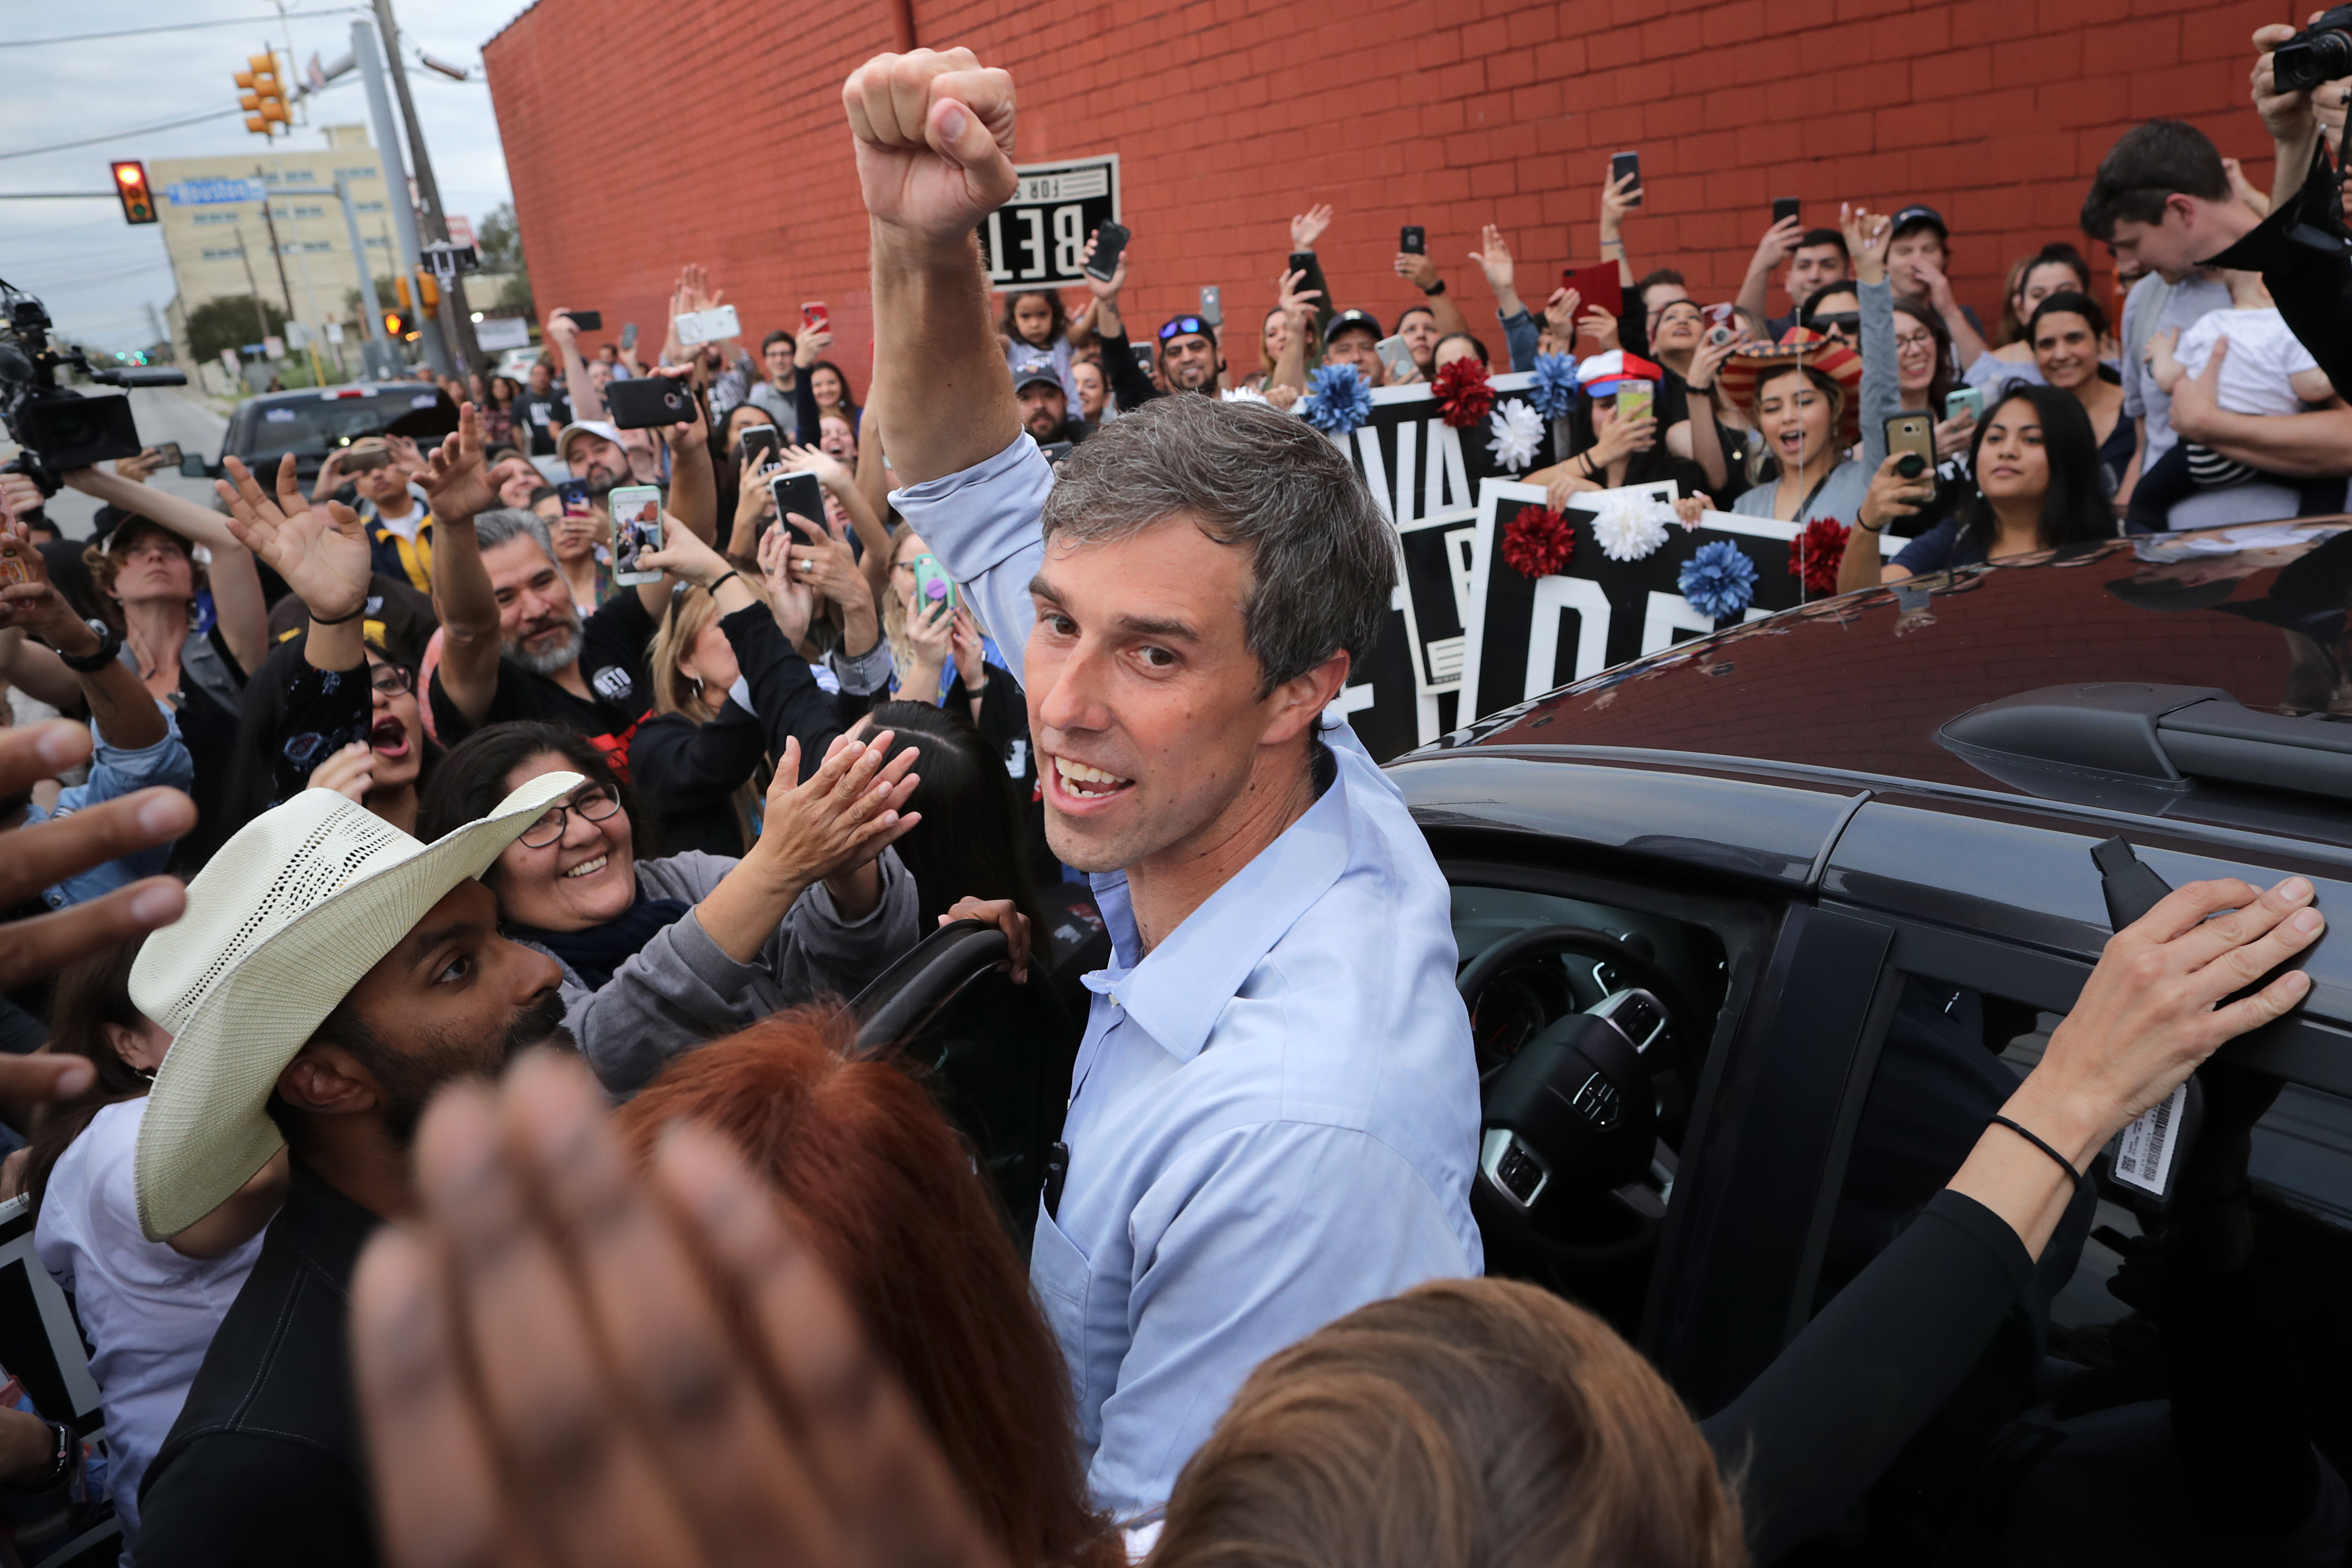 Former U.S. Rep. Beto O'Rourke is joining the race for the Democratic presidential nomination.